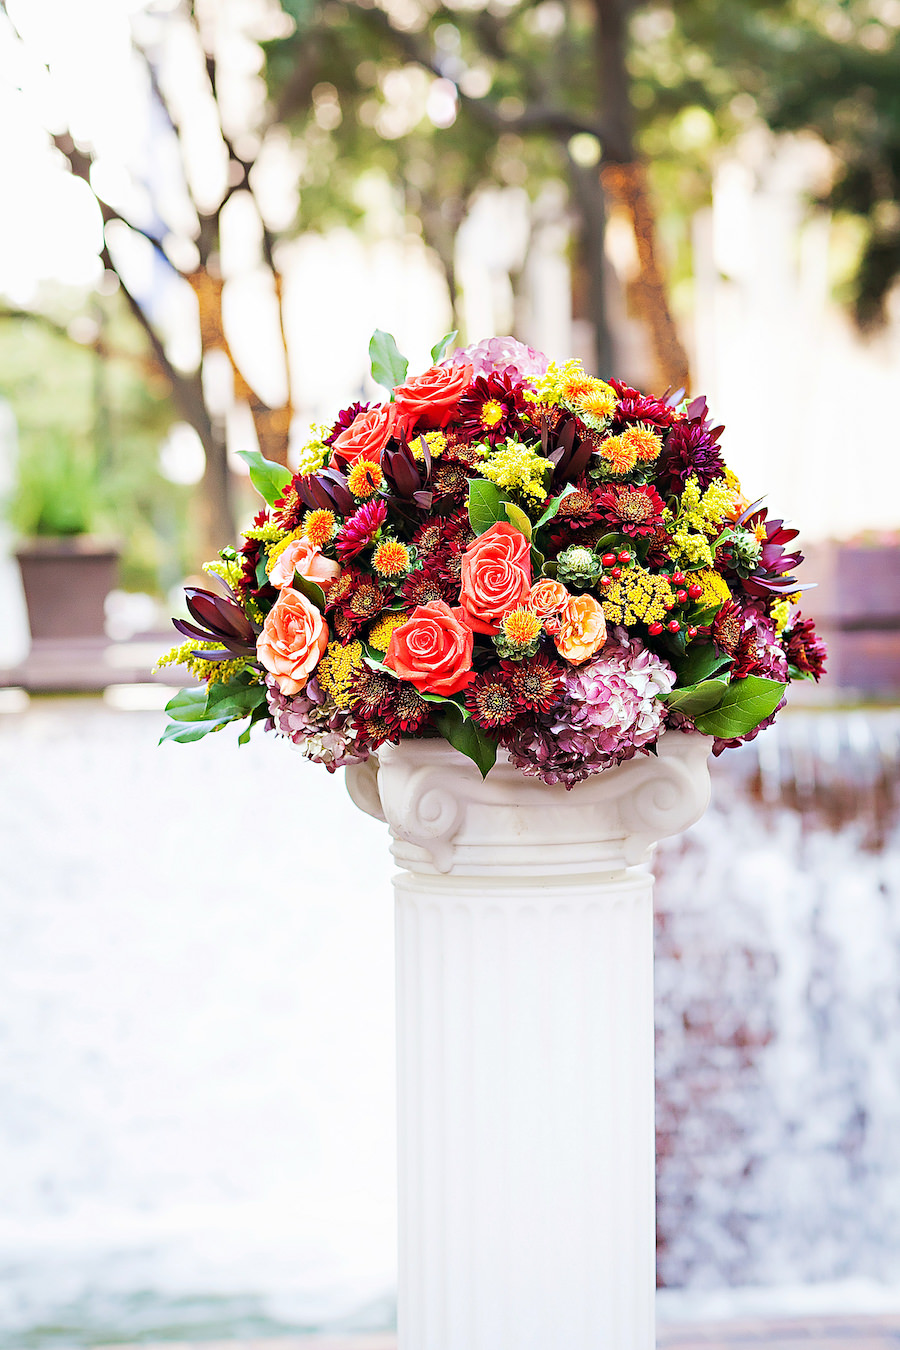 Outdoor Wedding Ceremony Décor with Orange, Yellow and Burgundy Wedding Centerpieces   Tampa Wedding Photographer Limelight Photography